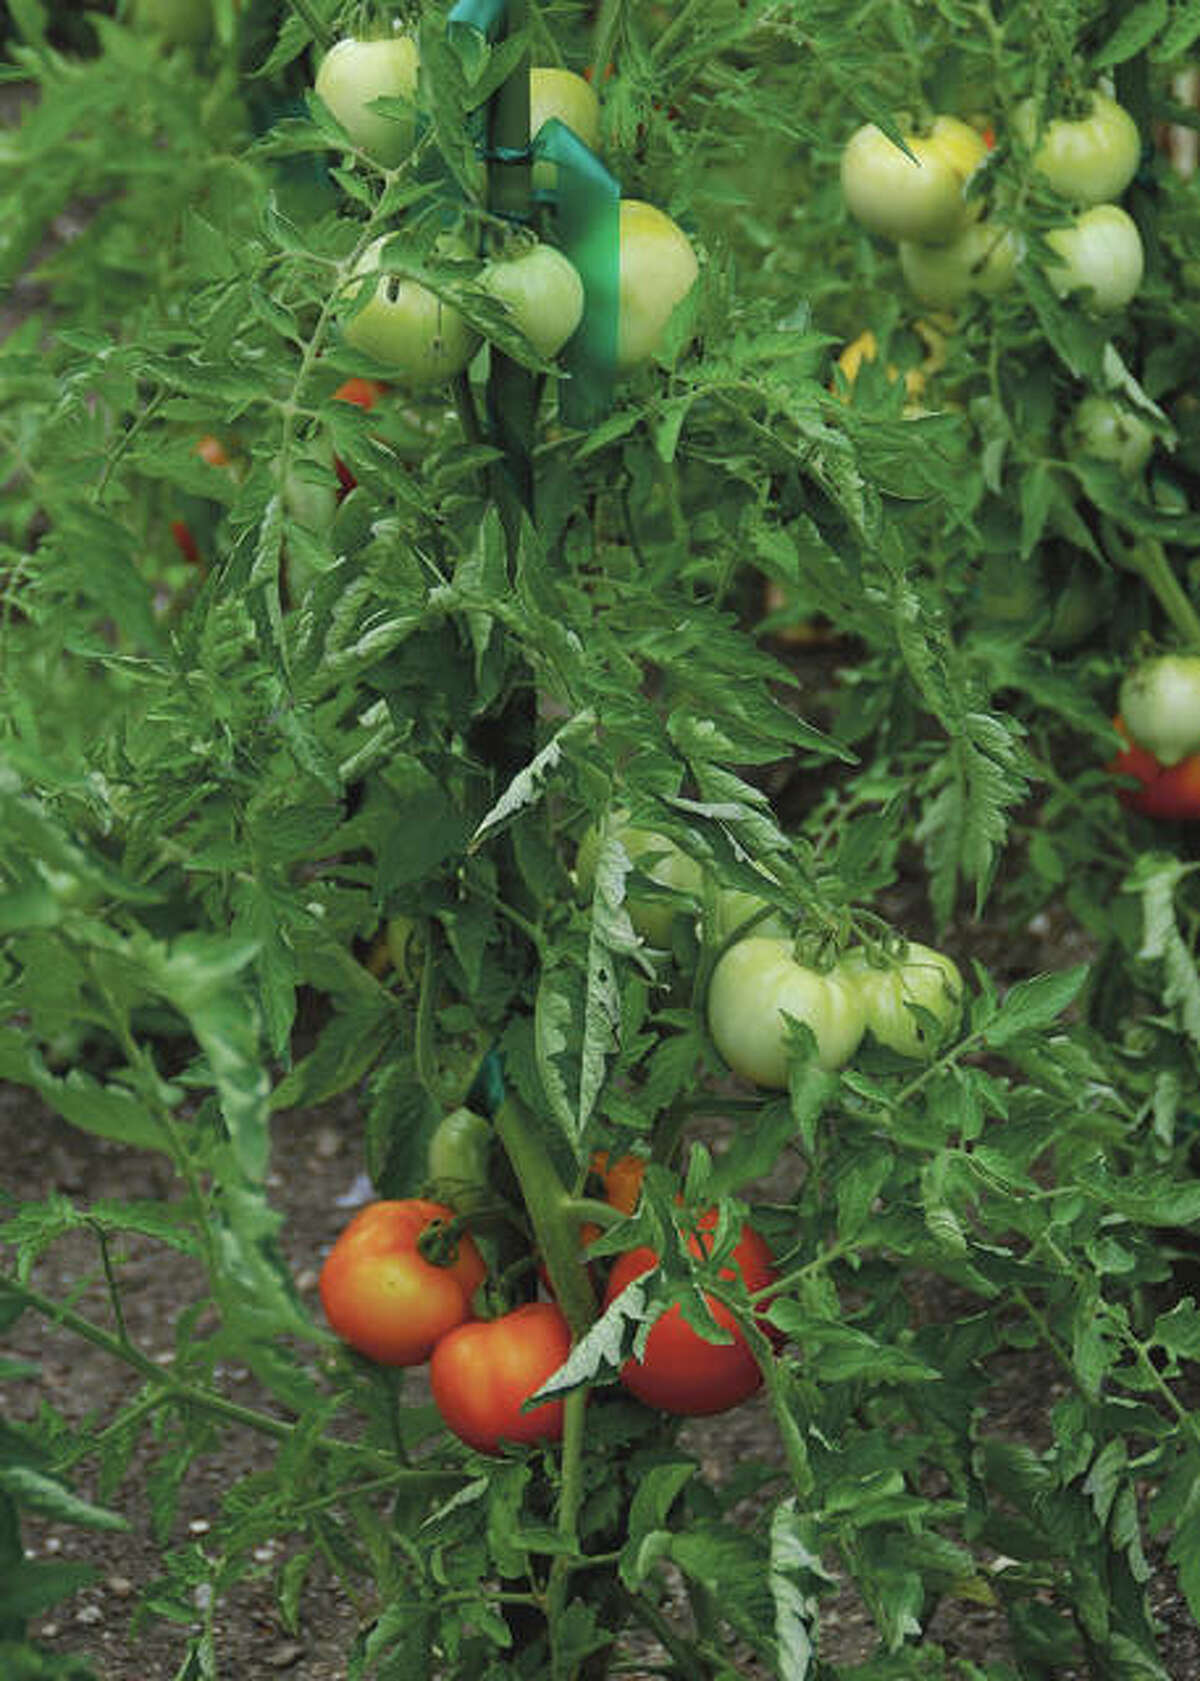 Tomatoes contain lycopene, a powerful antioxidant with many health benefits, including lowering the risk of certain types of cancer.